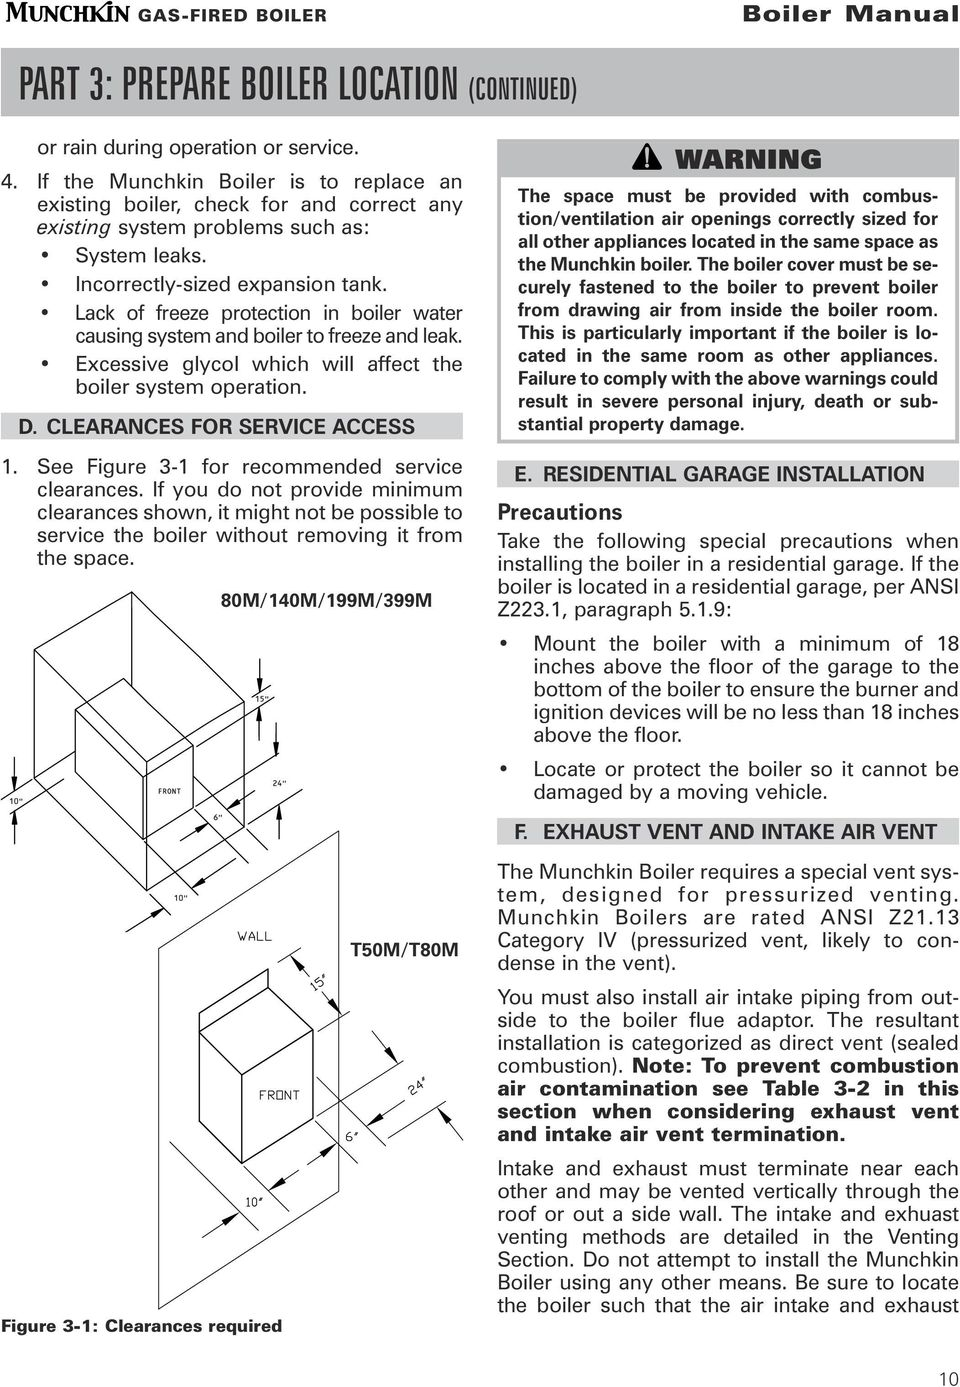 Boiler Manual Installation Startup Maintenance Parts Warning Pdf Munchkin Wiring Diagram Lack Of Freeze Protection In Water Causing System And To Leak